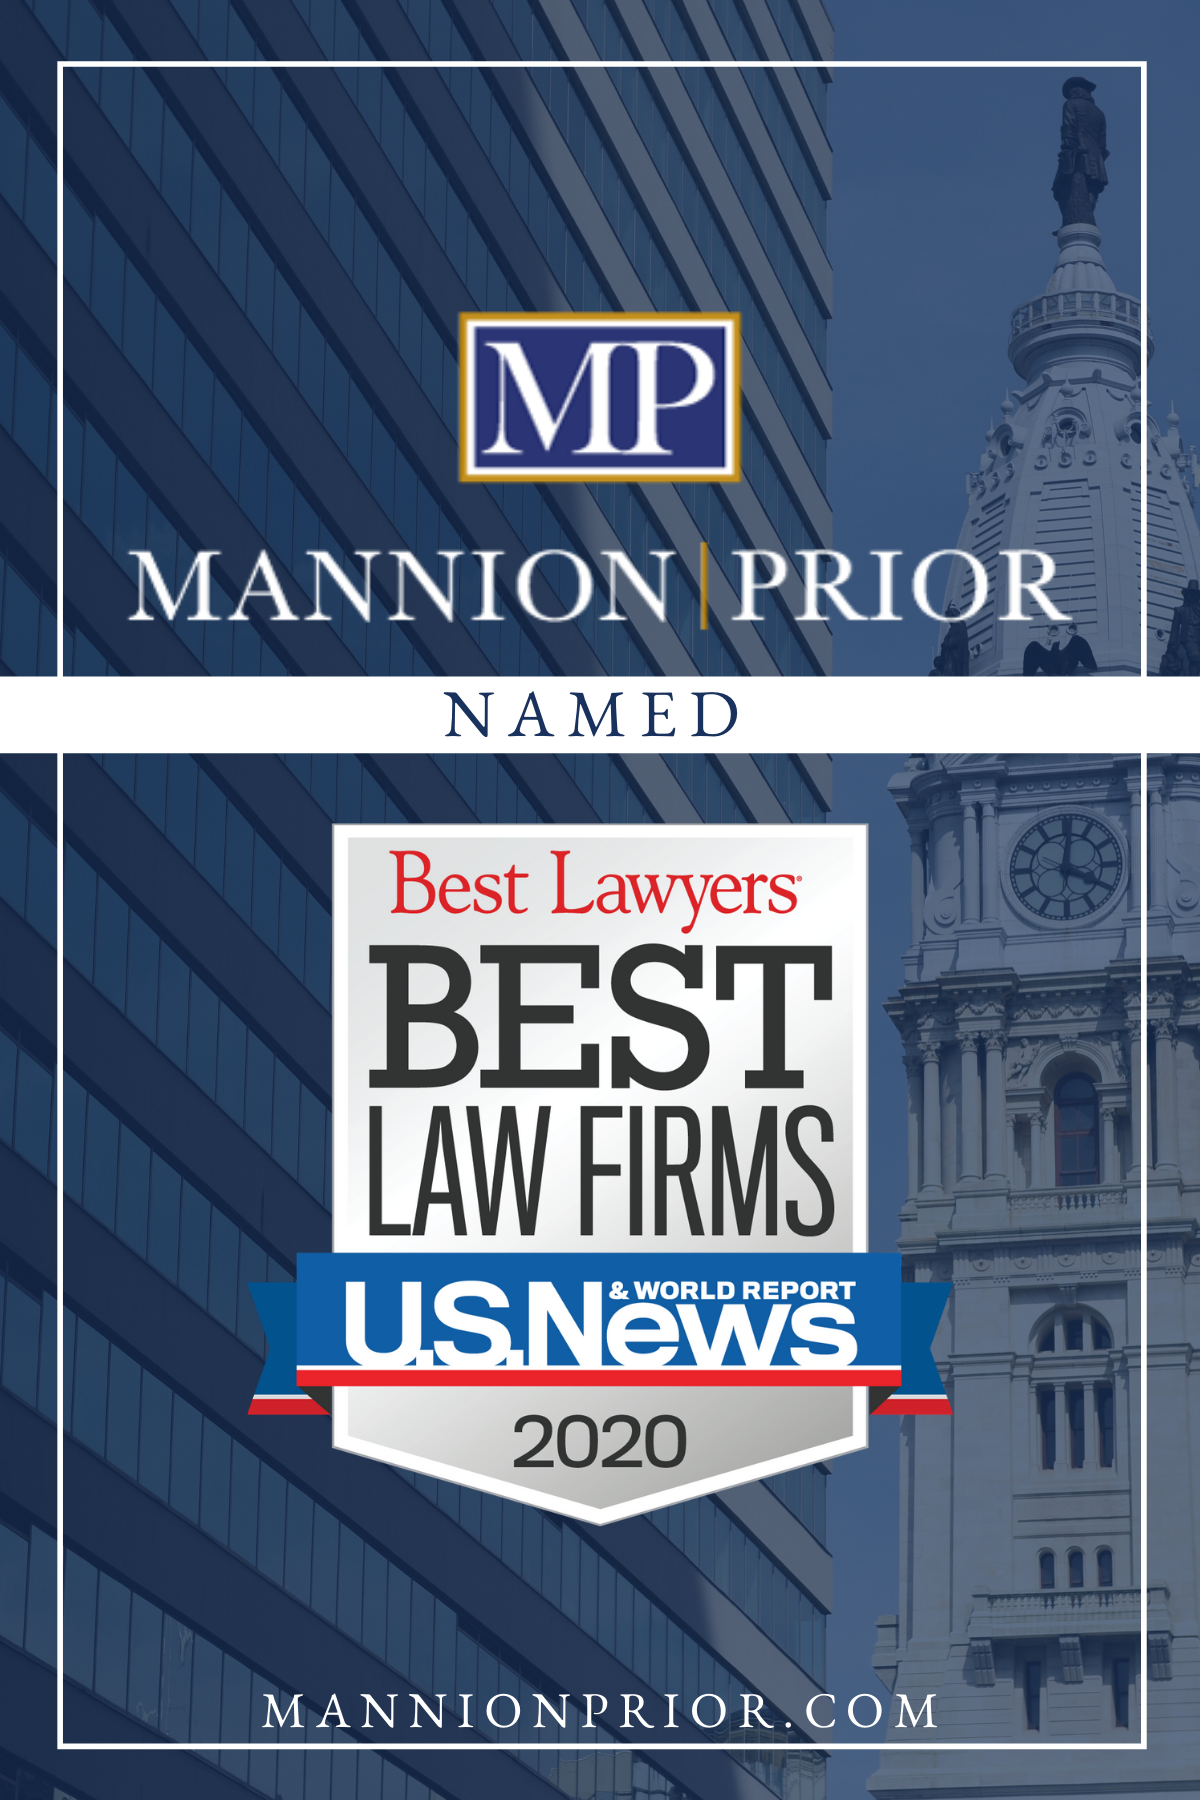 MP Best Law Firm Graphic.png